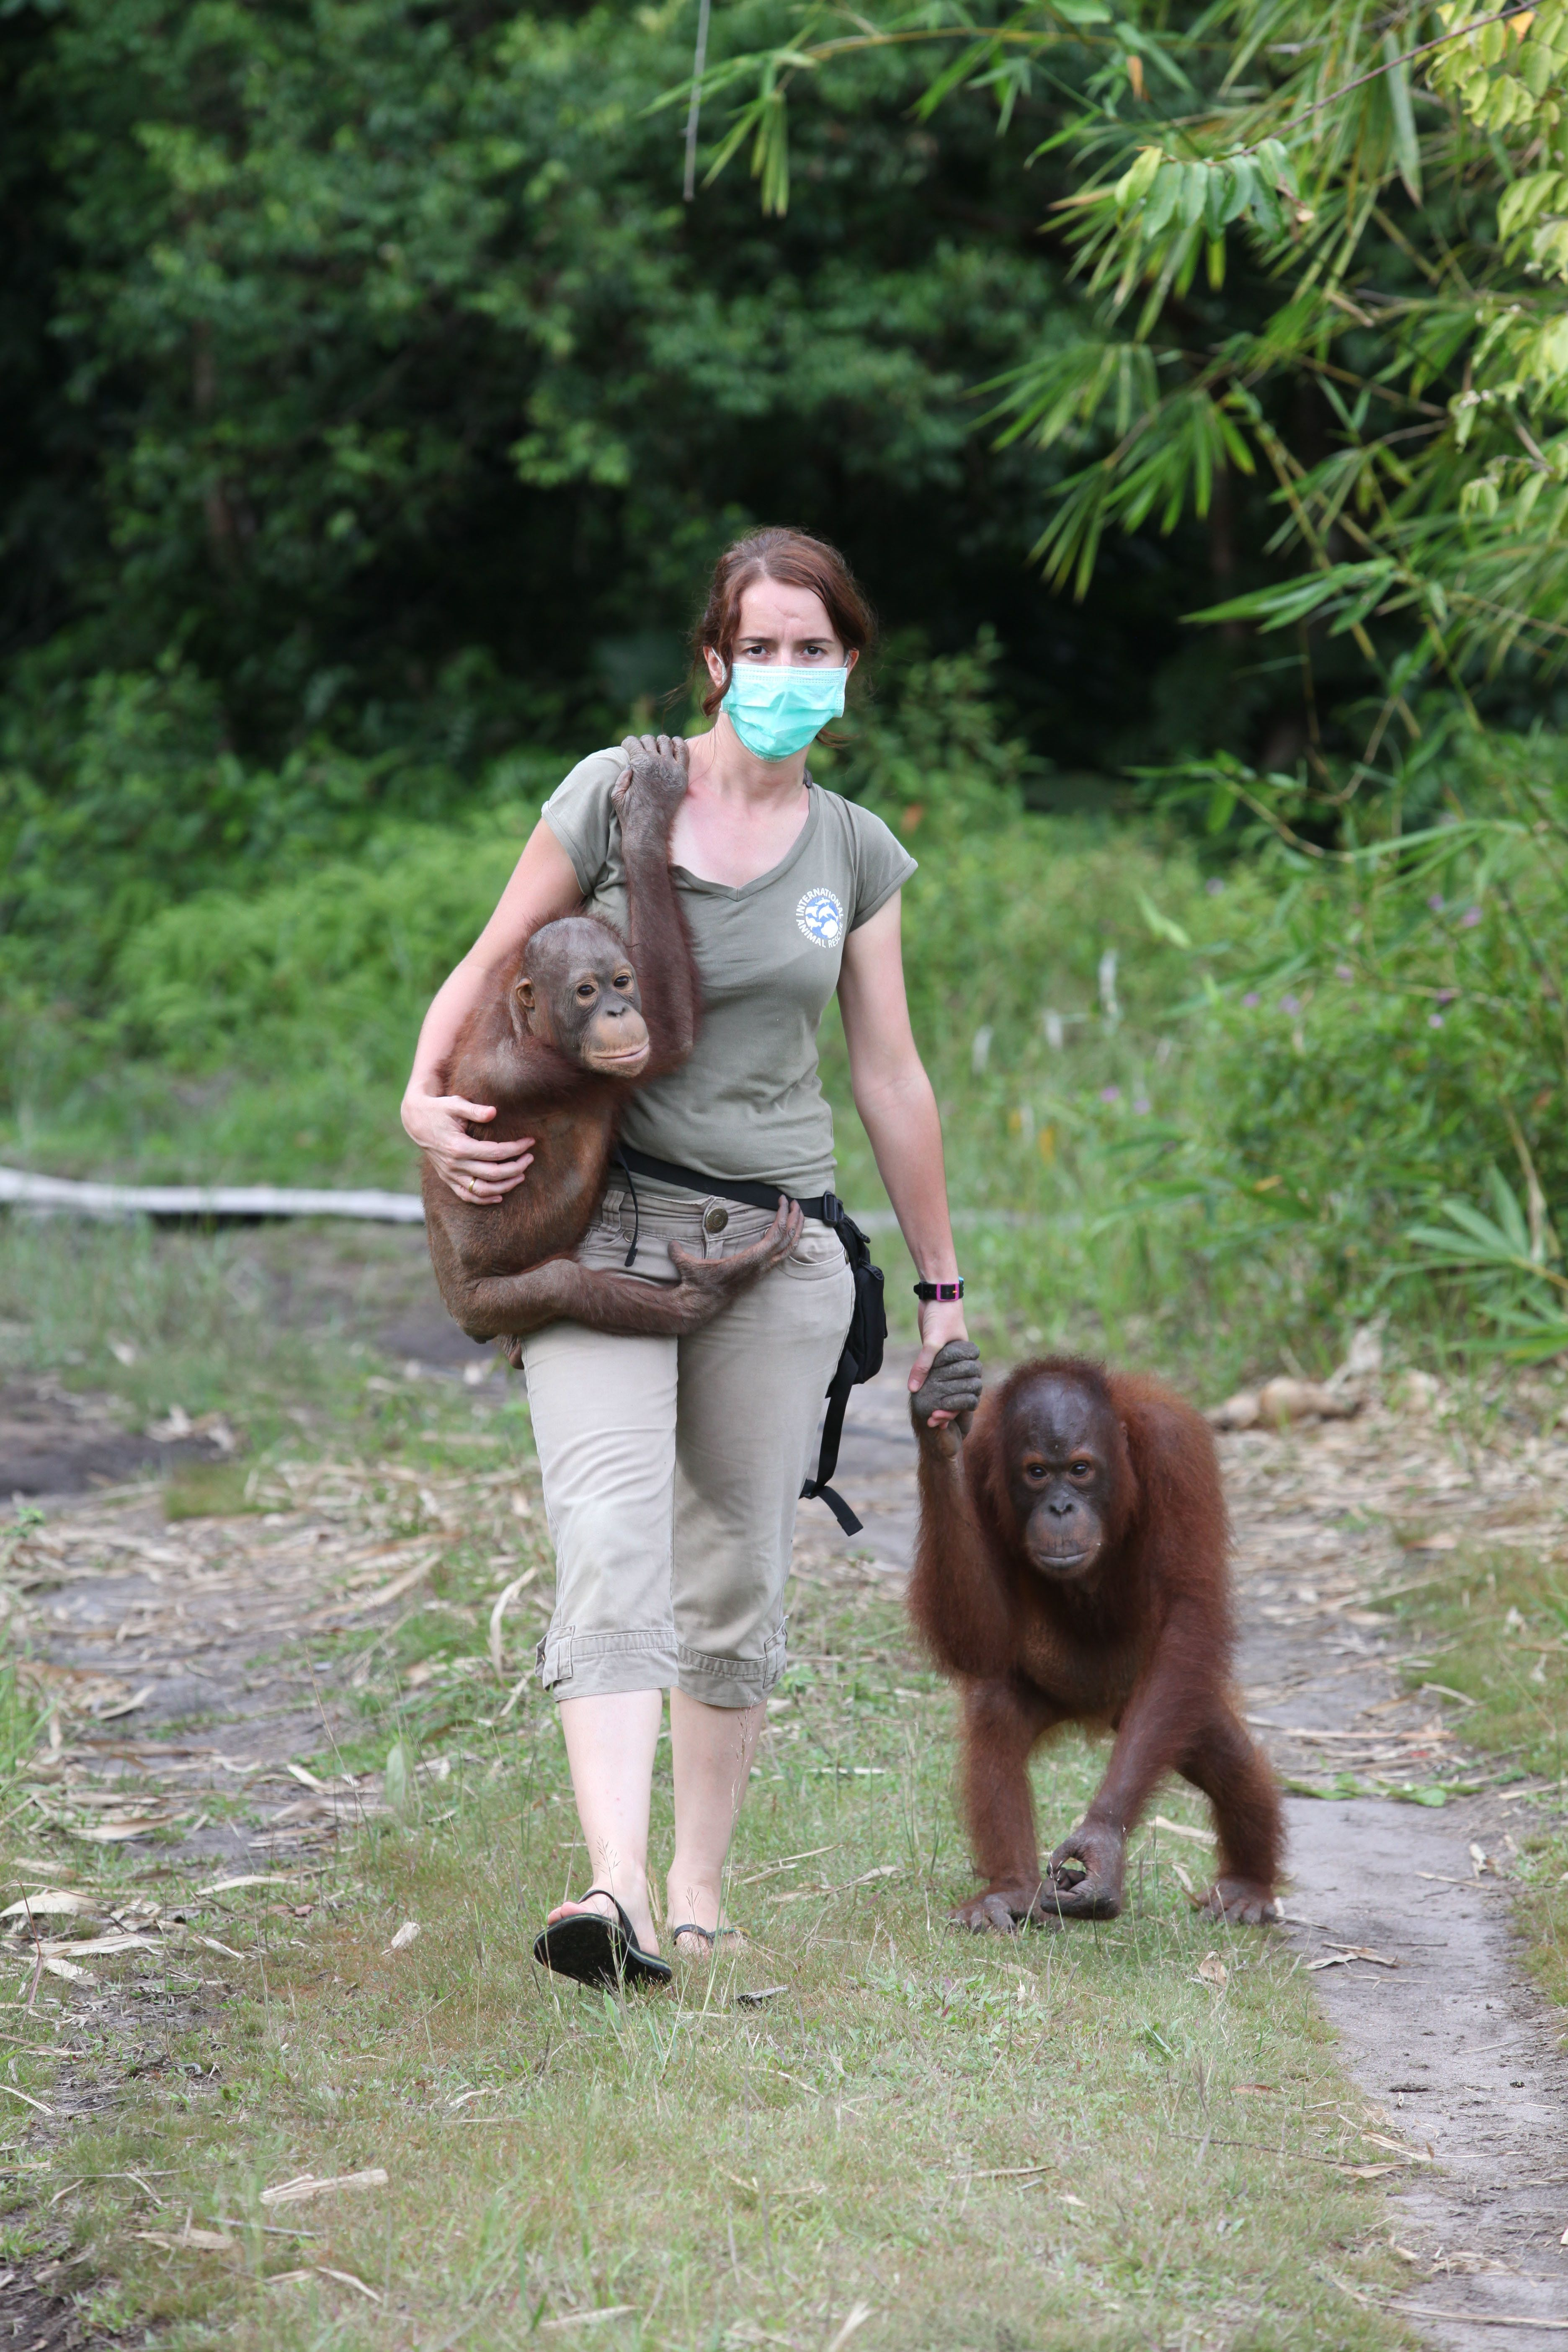 Dr. Karmele Llano Sanchez leads a team in Indonesia that rescues and rehabilitates orangutans,many...